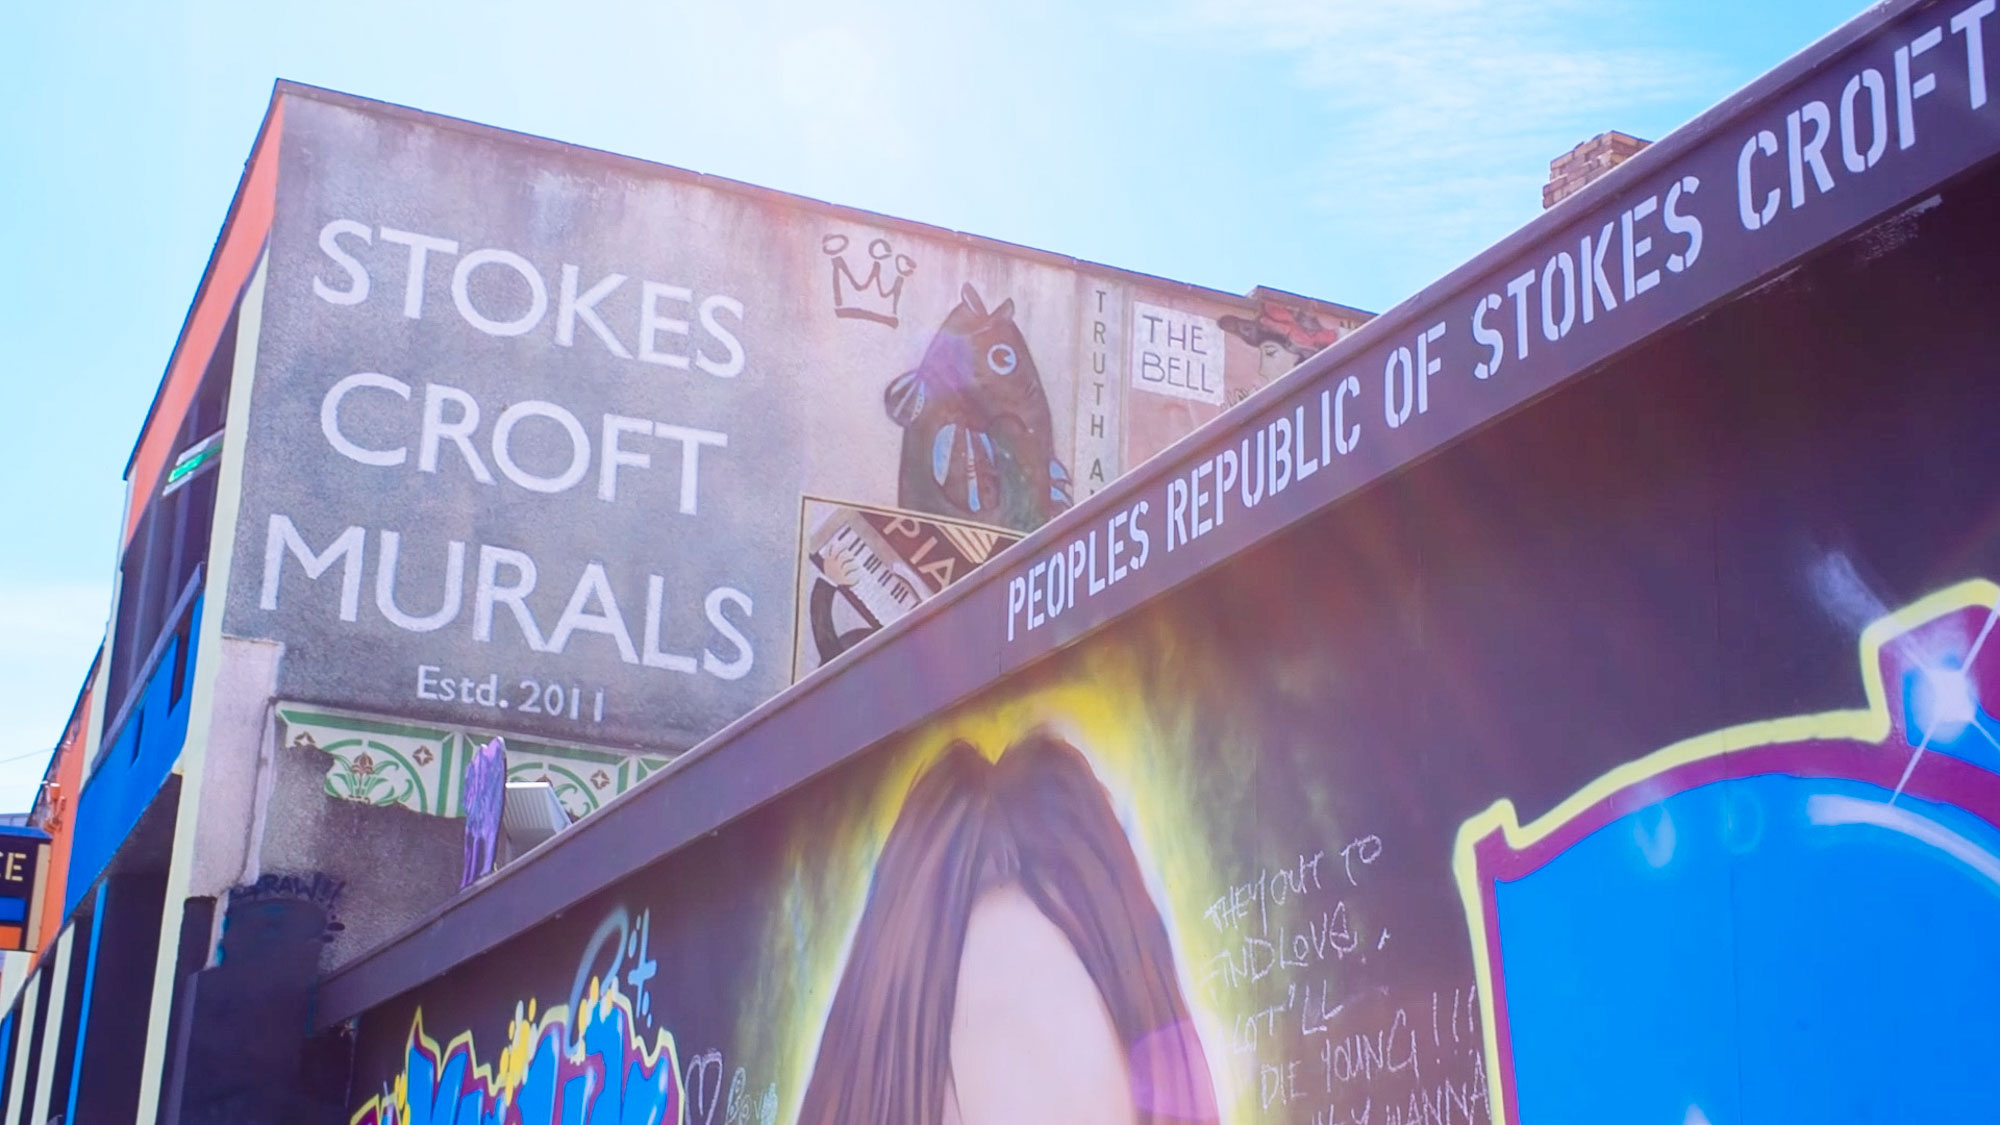 Things to do in Bristol - Street art in Stokes Croft